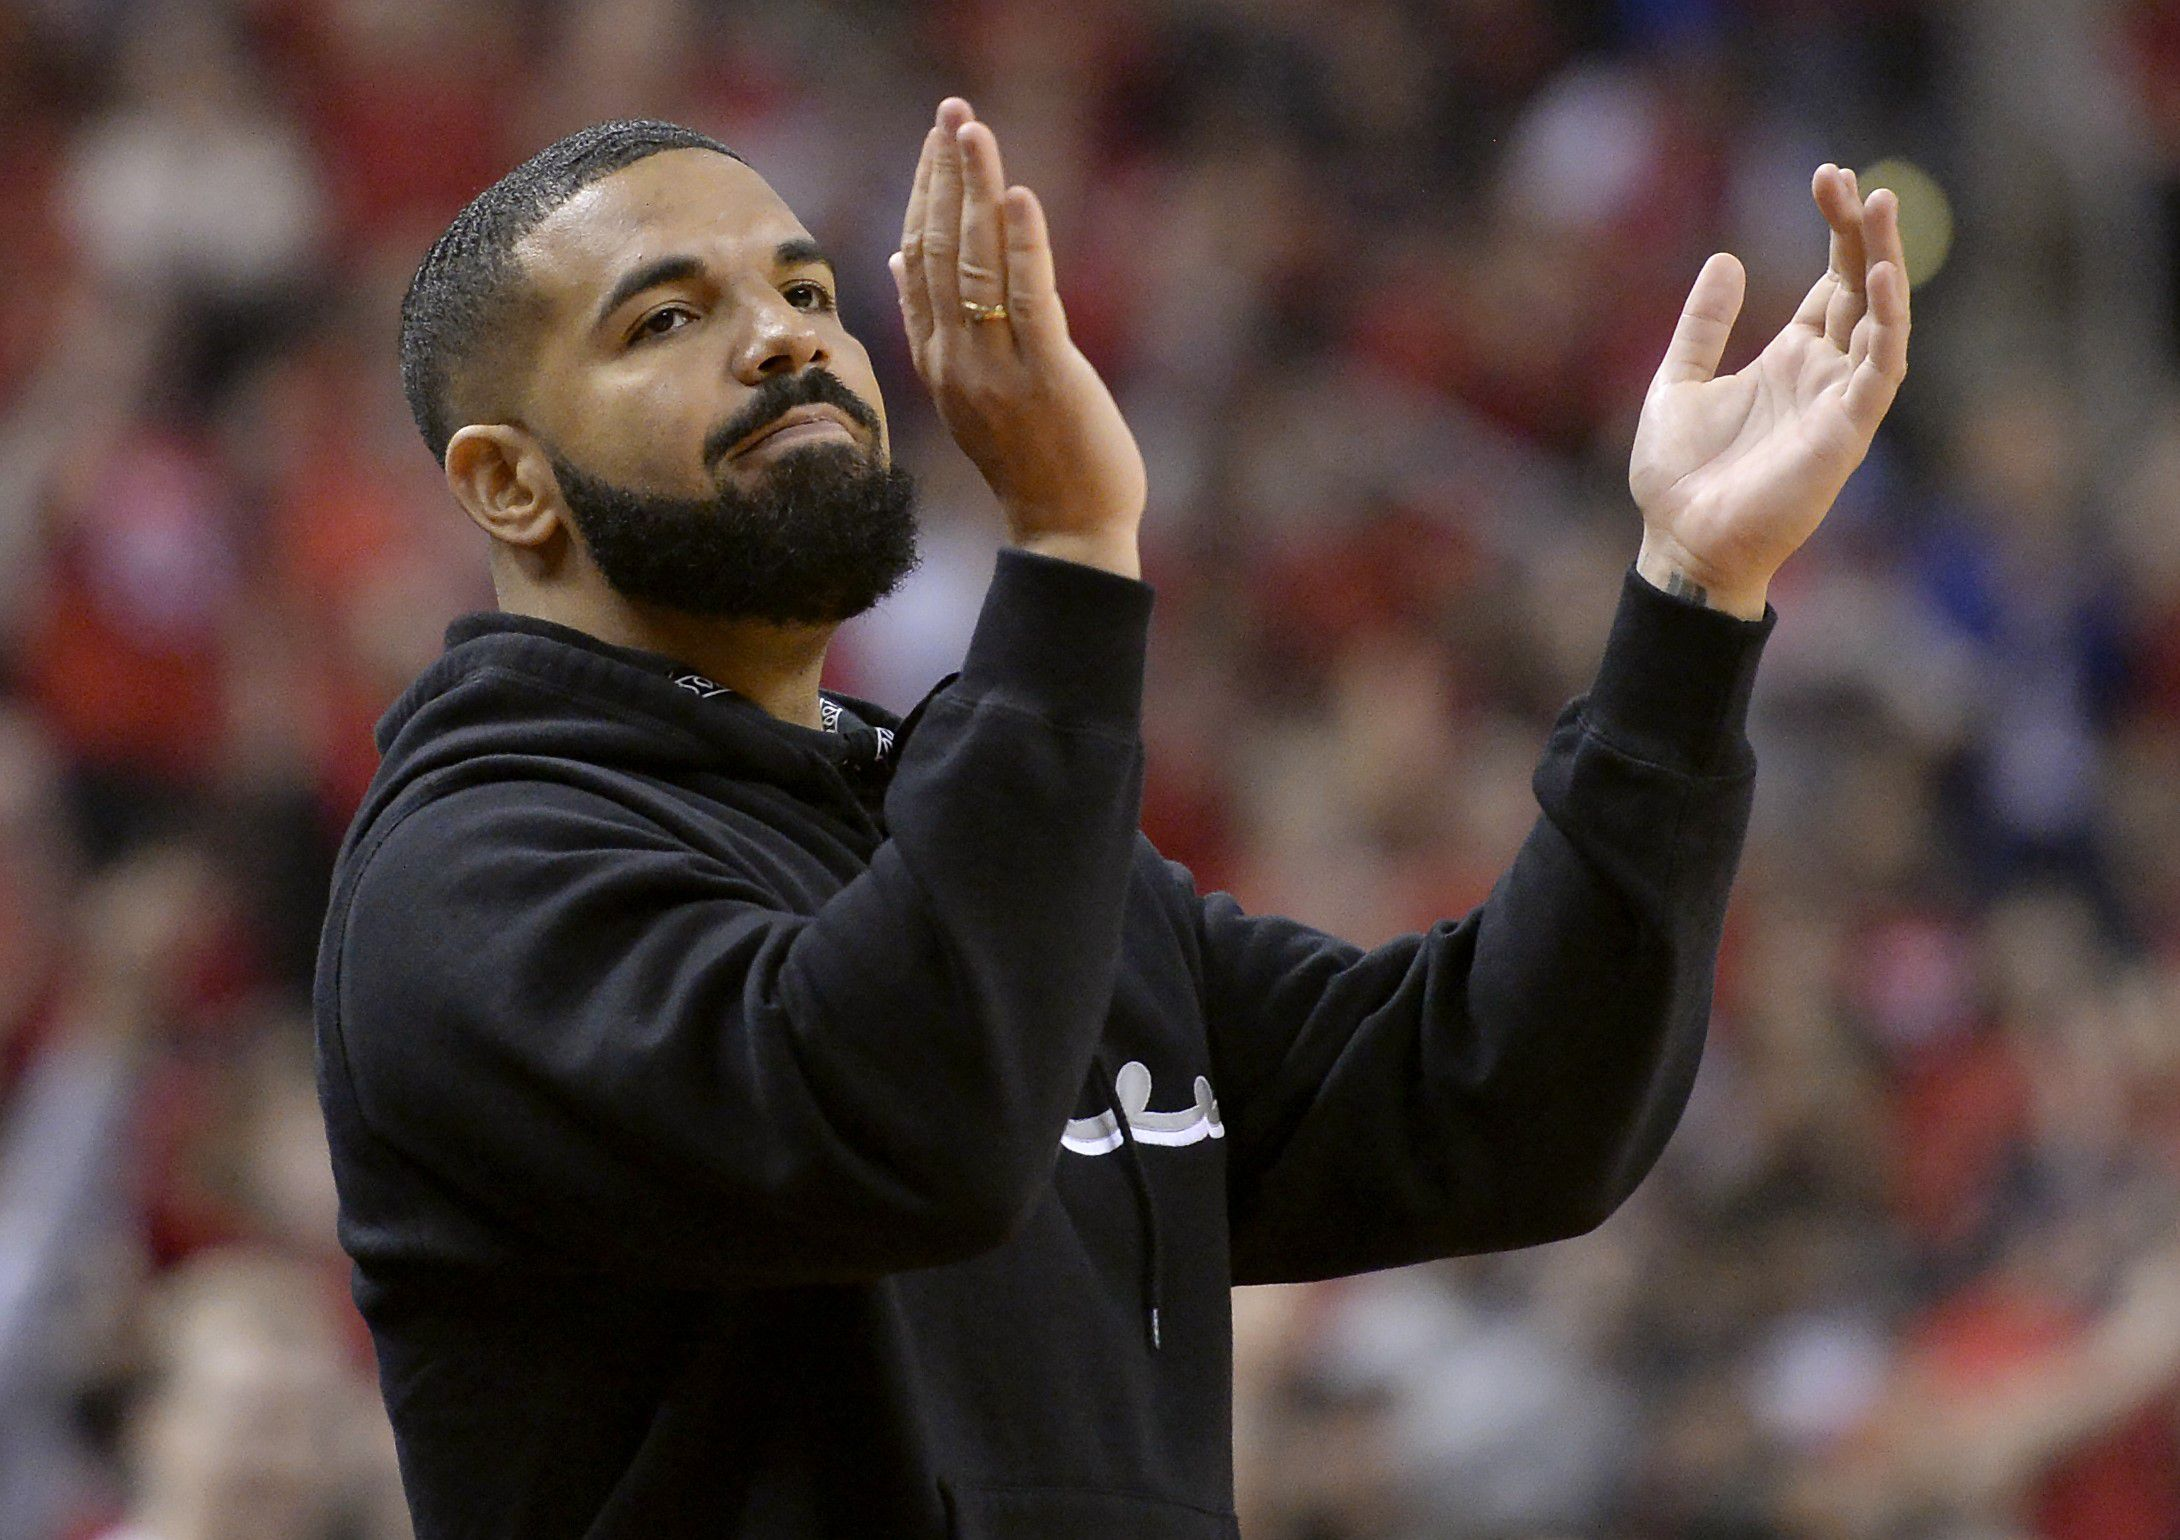 Of course Drake is a part of the Raptors. Hip hop and basketball are intertwined